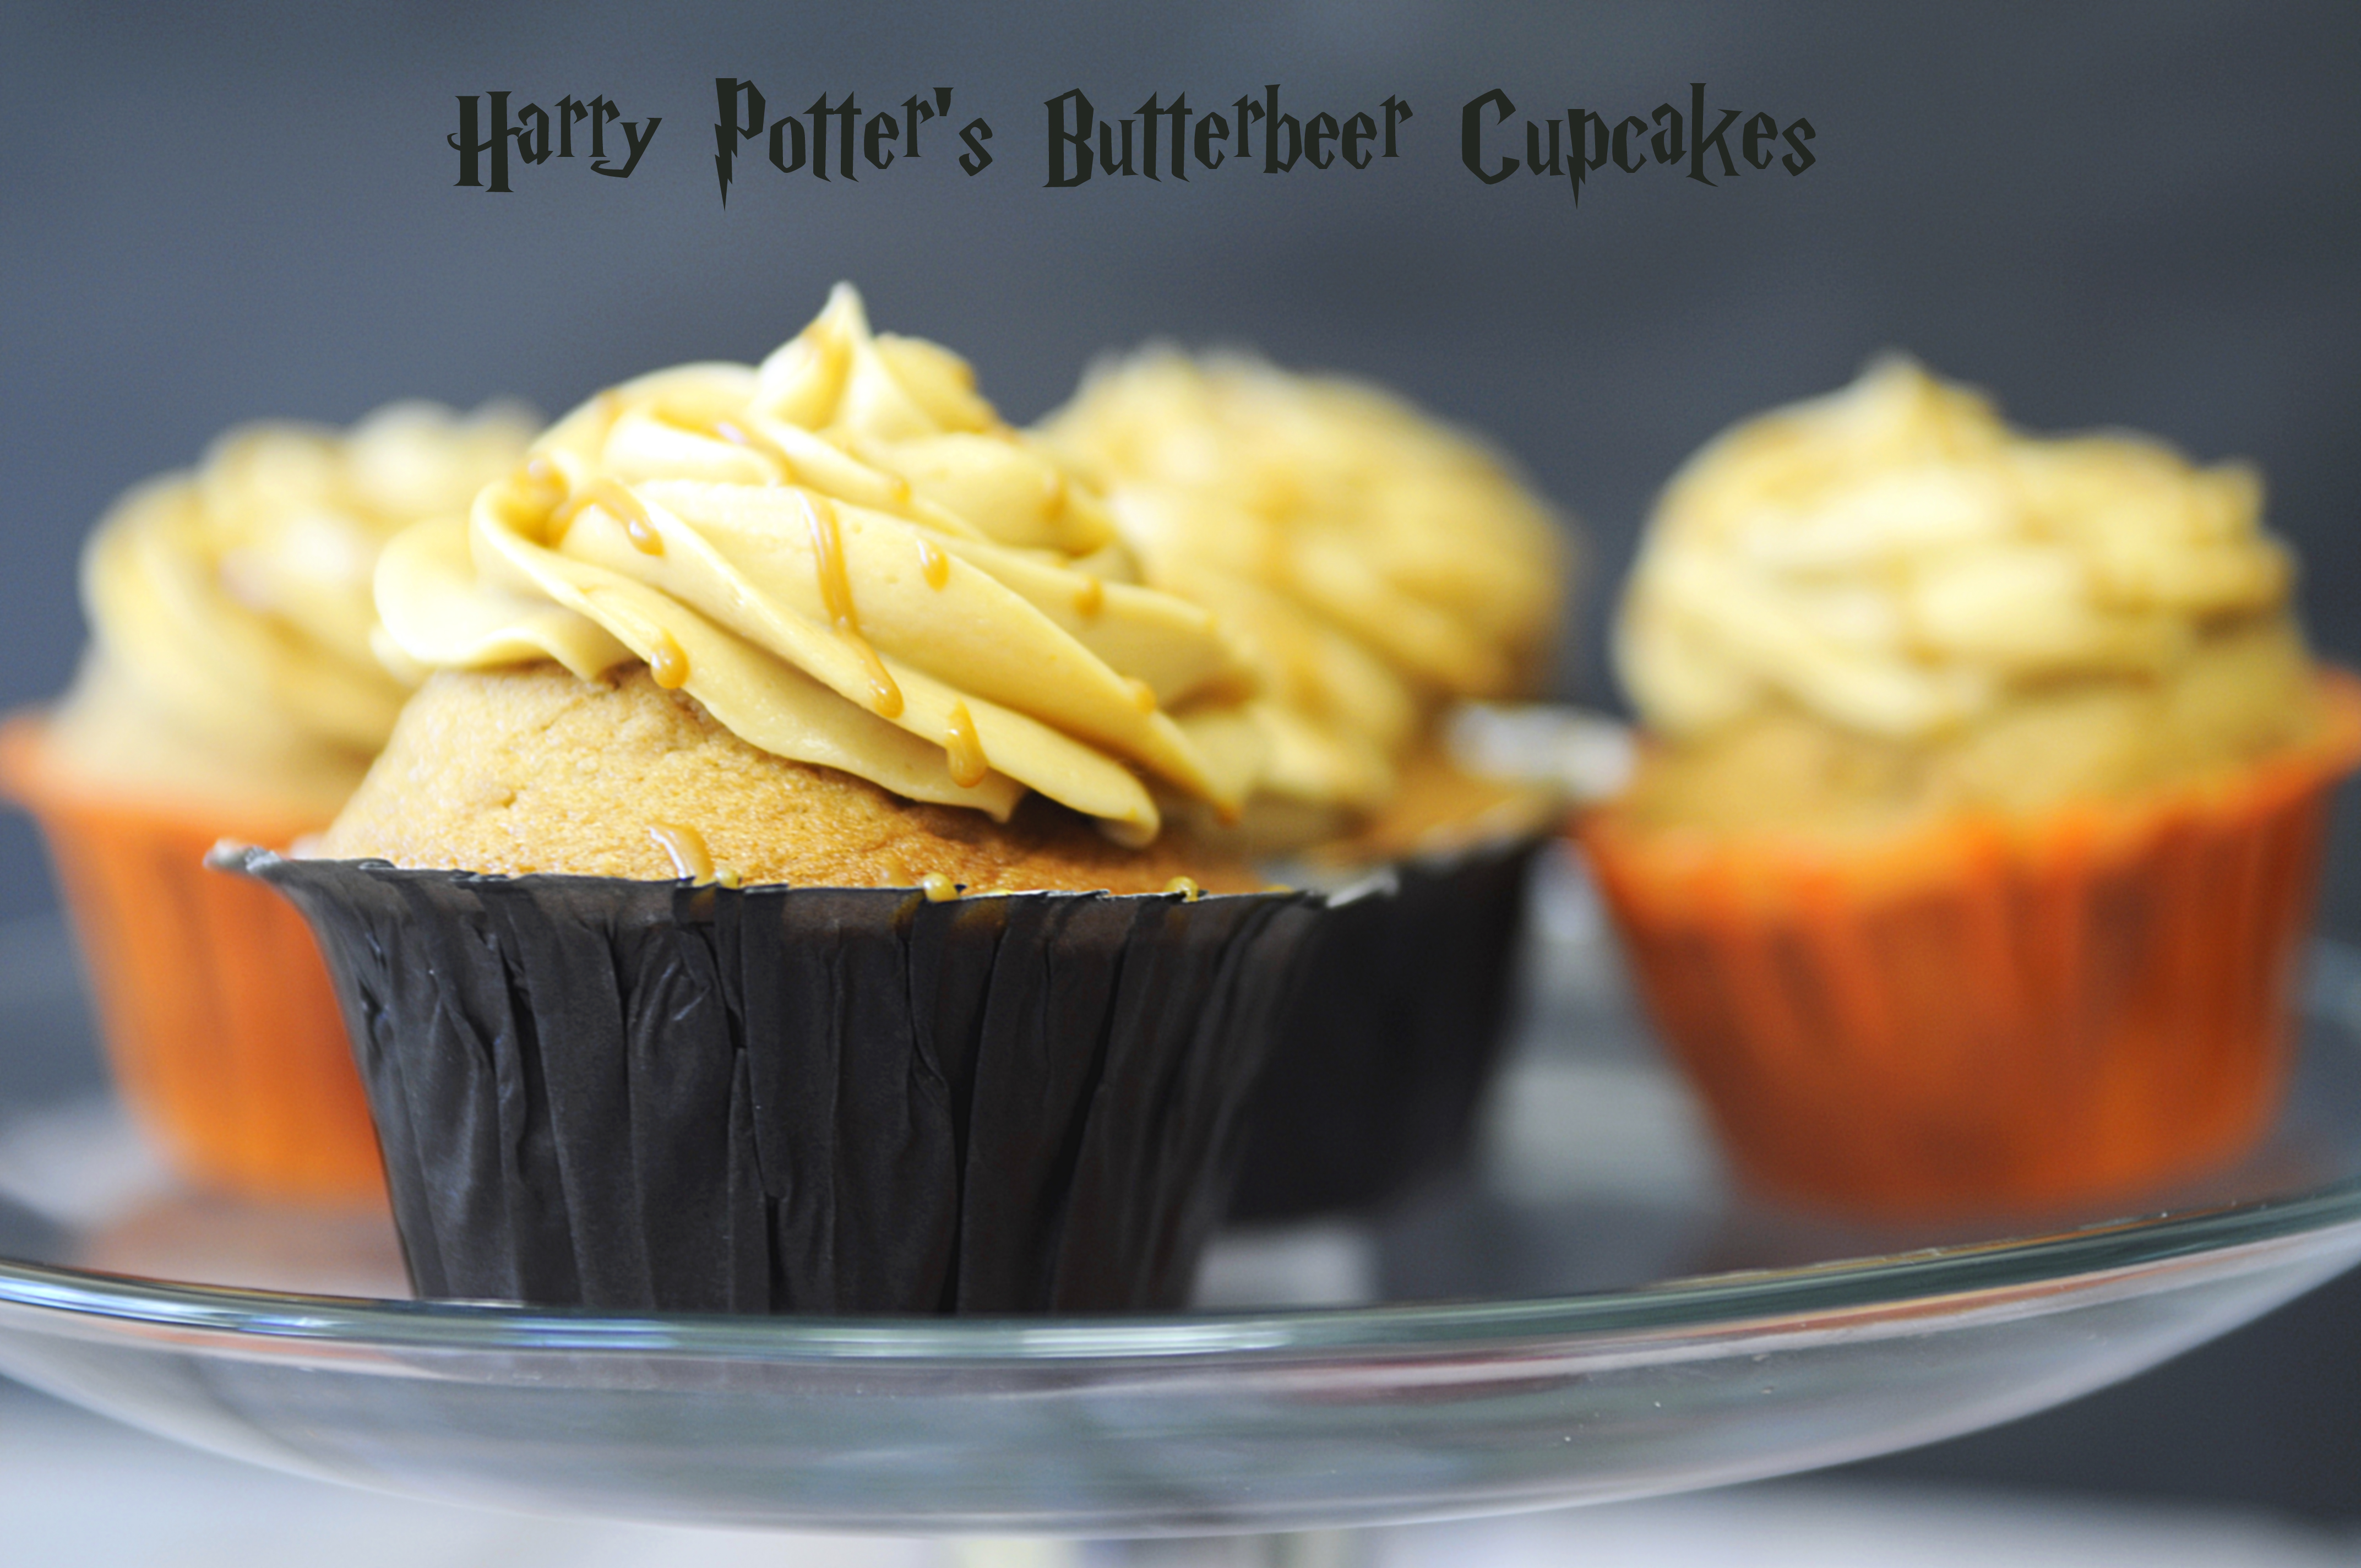 White If Harry Butterbeer Cupcakes Feed Seymourfeed Seymour Harry Potter Cupcakes Richmond Harry Potter Cupcakes Recipe nice food Harry Potter Cupcakes